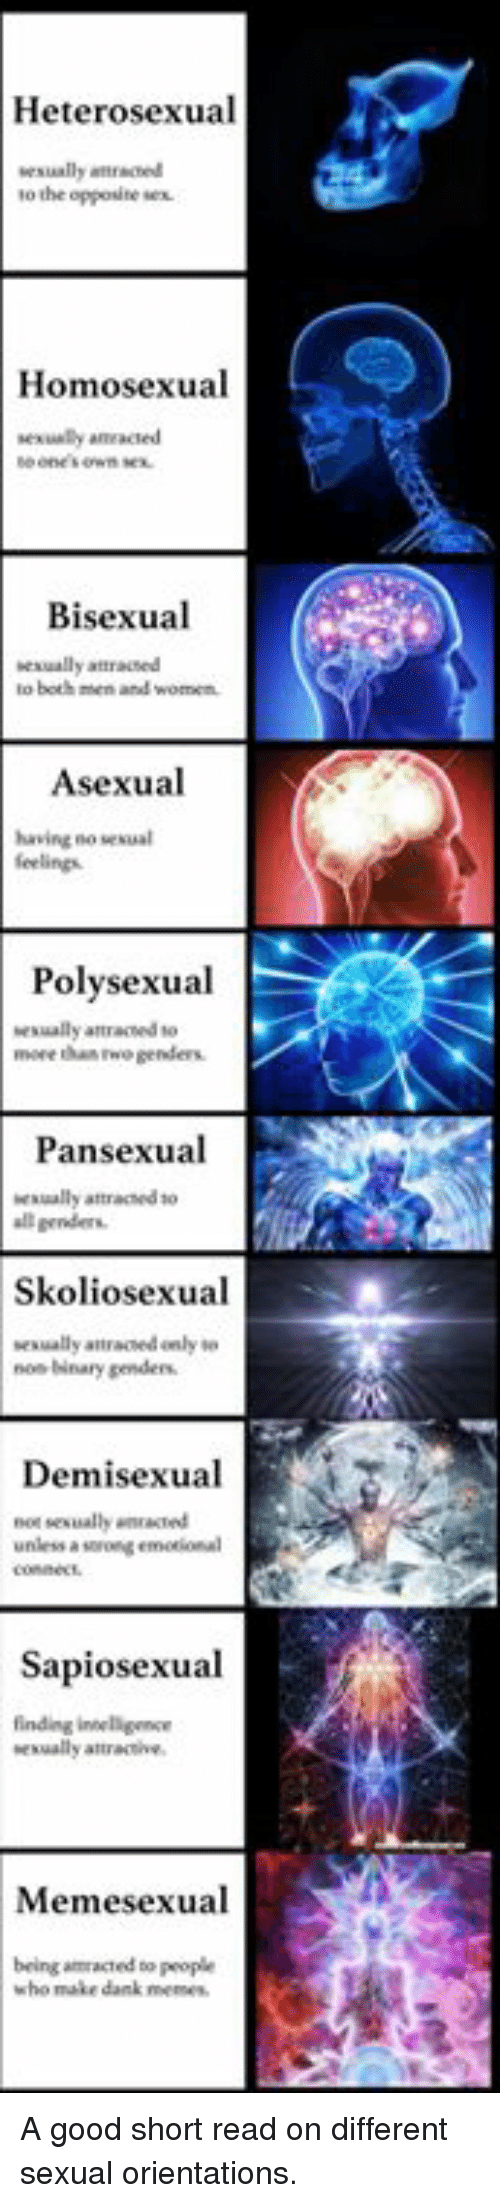 Dank, Memes, and Asexual: Heterosexual  to the oppositeex  Homosexual  exuly ameacted  Bisexual  exually attracsed  Asexual  having no sesa  feelings  Polysexual  esually atraced to  move thas two genders  Pansexual  esually attraceds  l genders  Skoliosexual  sesually attraced only  nos Nnary genders  Demisexual  not sesually wnacted  unless a sorong emotional  Sapiosexual  finding inselligence  exually atte  Memesexual  being amracted to people  who make dank memes A good short read on different sexual orientations.